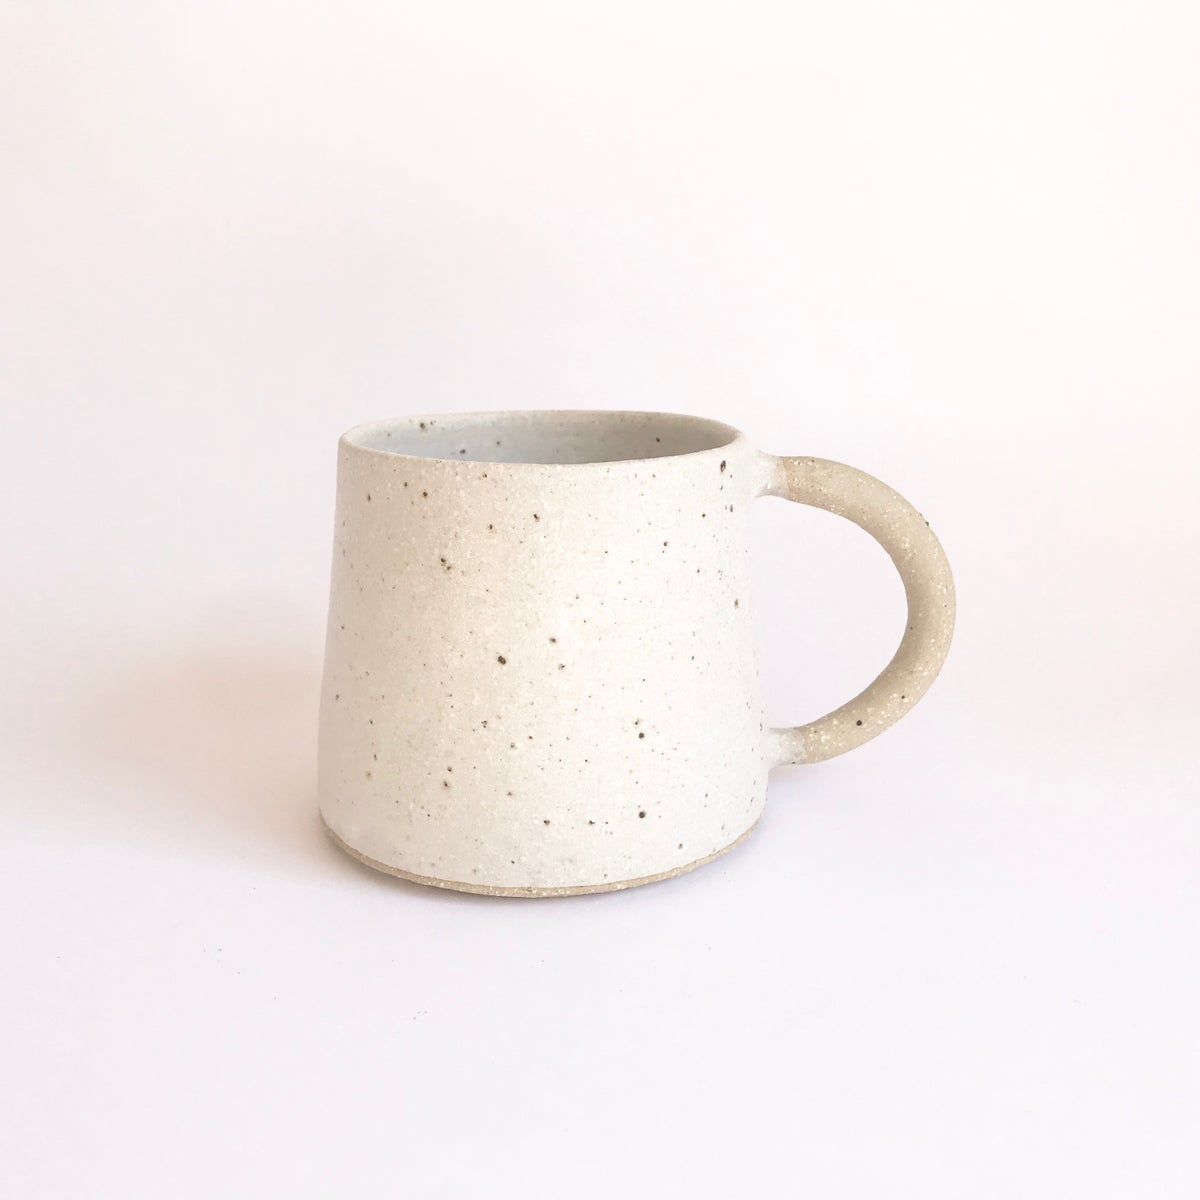 Image of White Sands Hug Me Mug